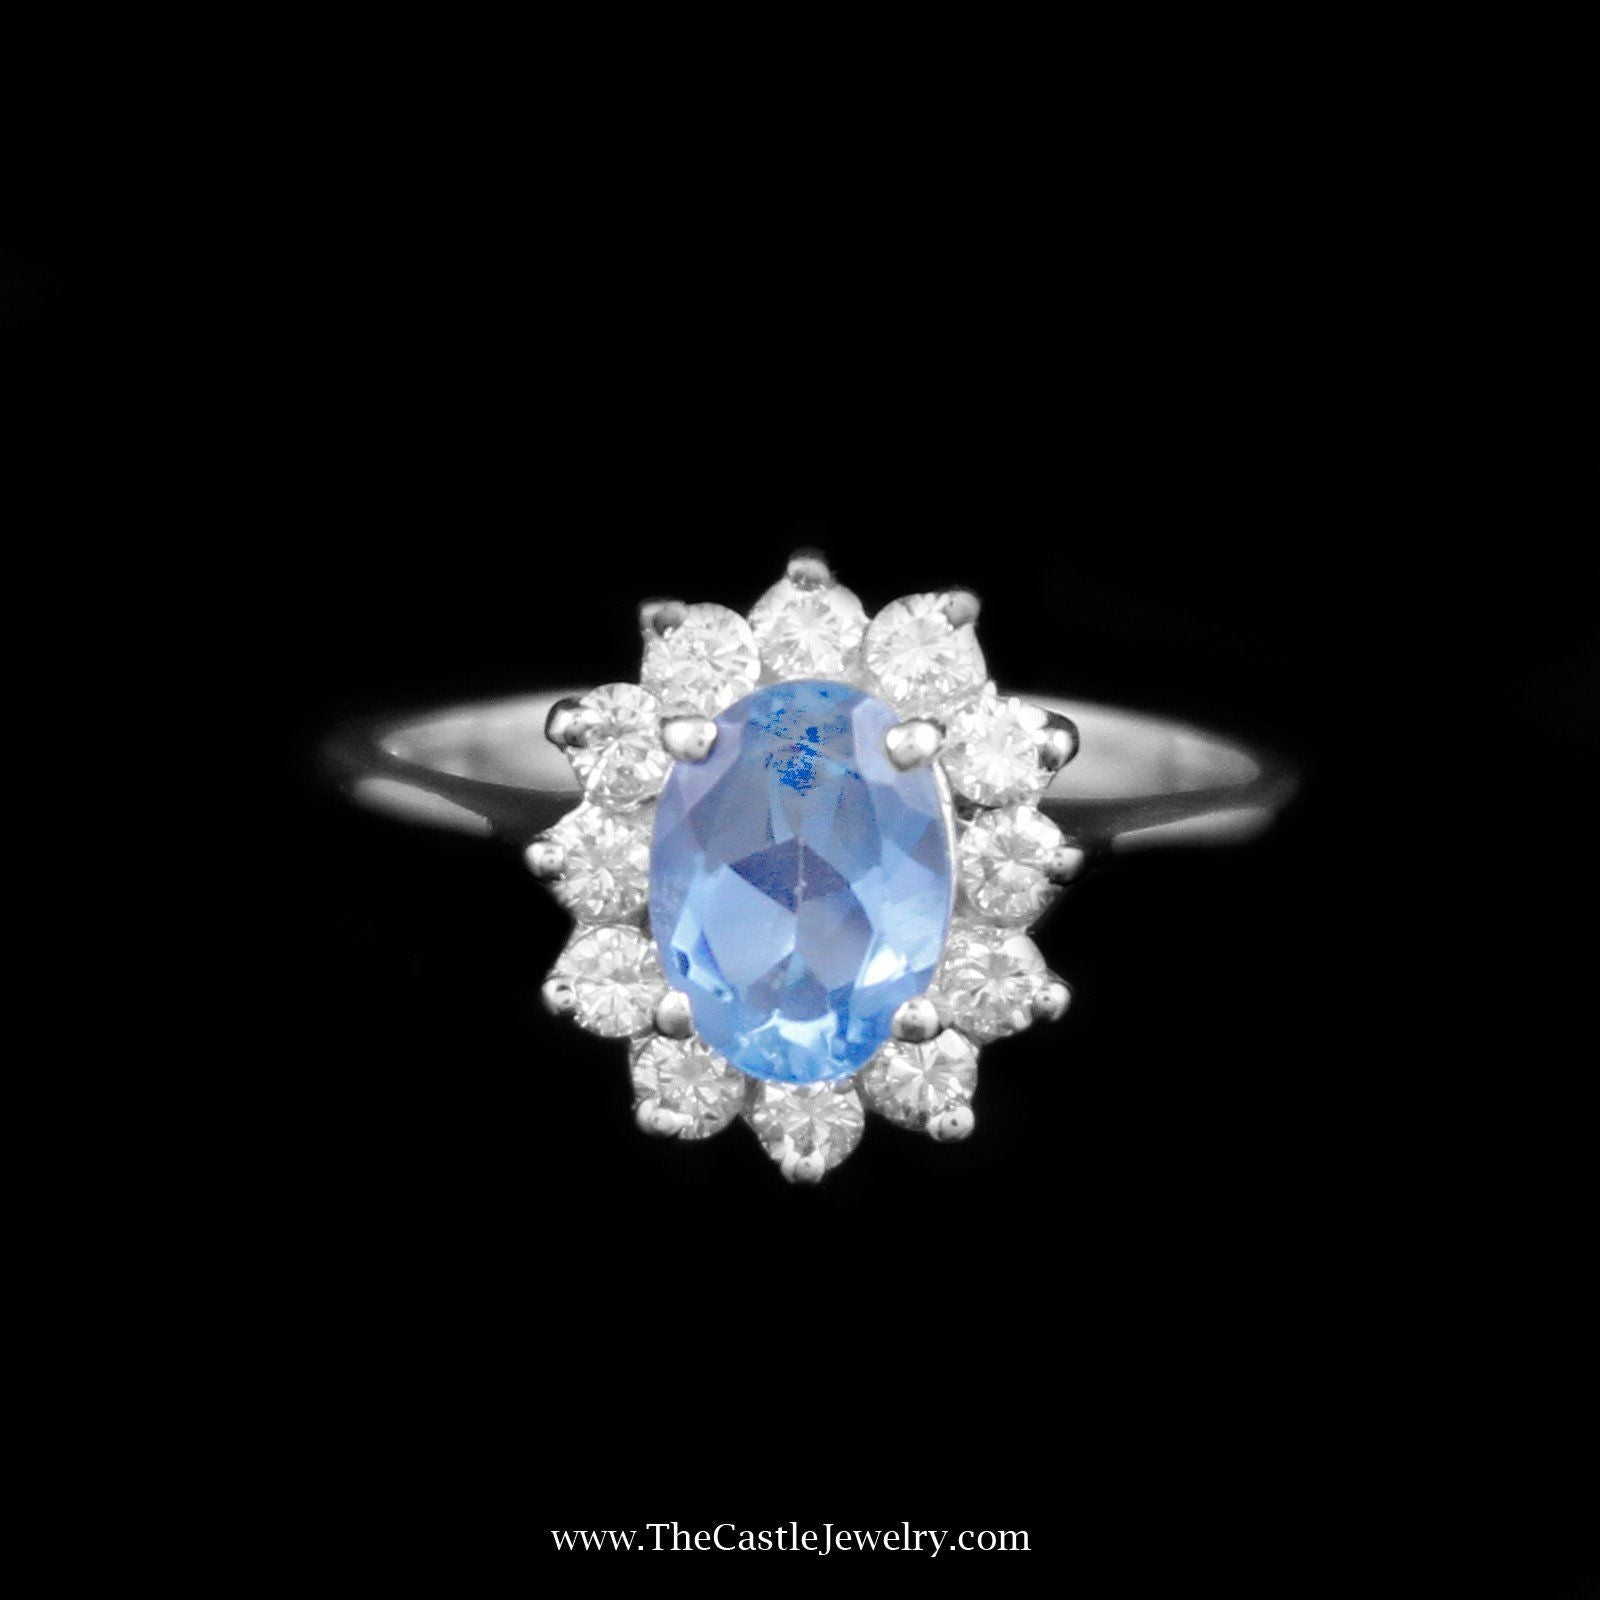 Charming Oval Topaz Ring with Diamond Bezel in 14K White Gold